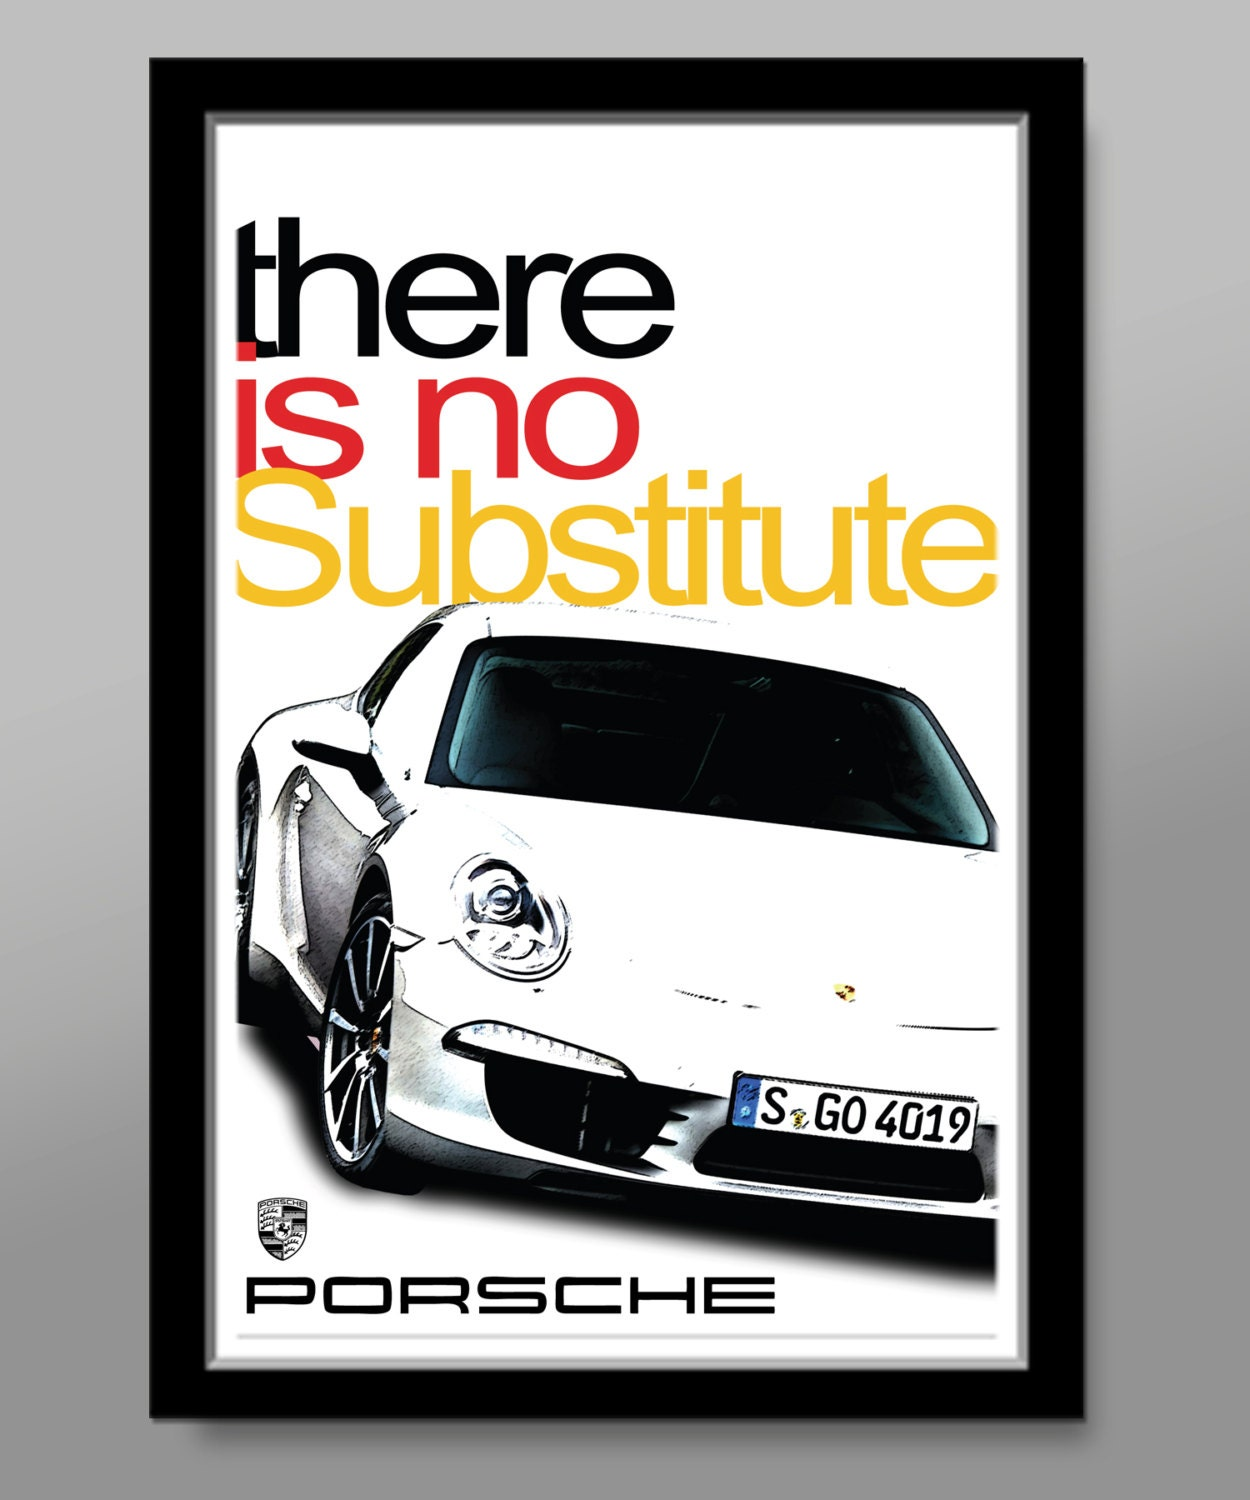 German 991 Sports Car There Is No Substitute Slogan | Etsy